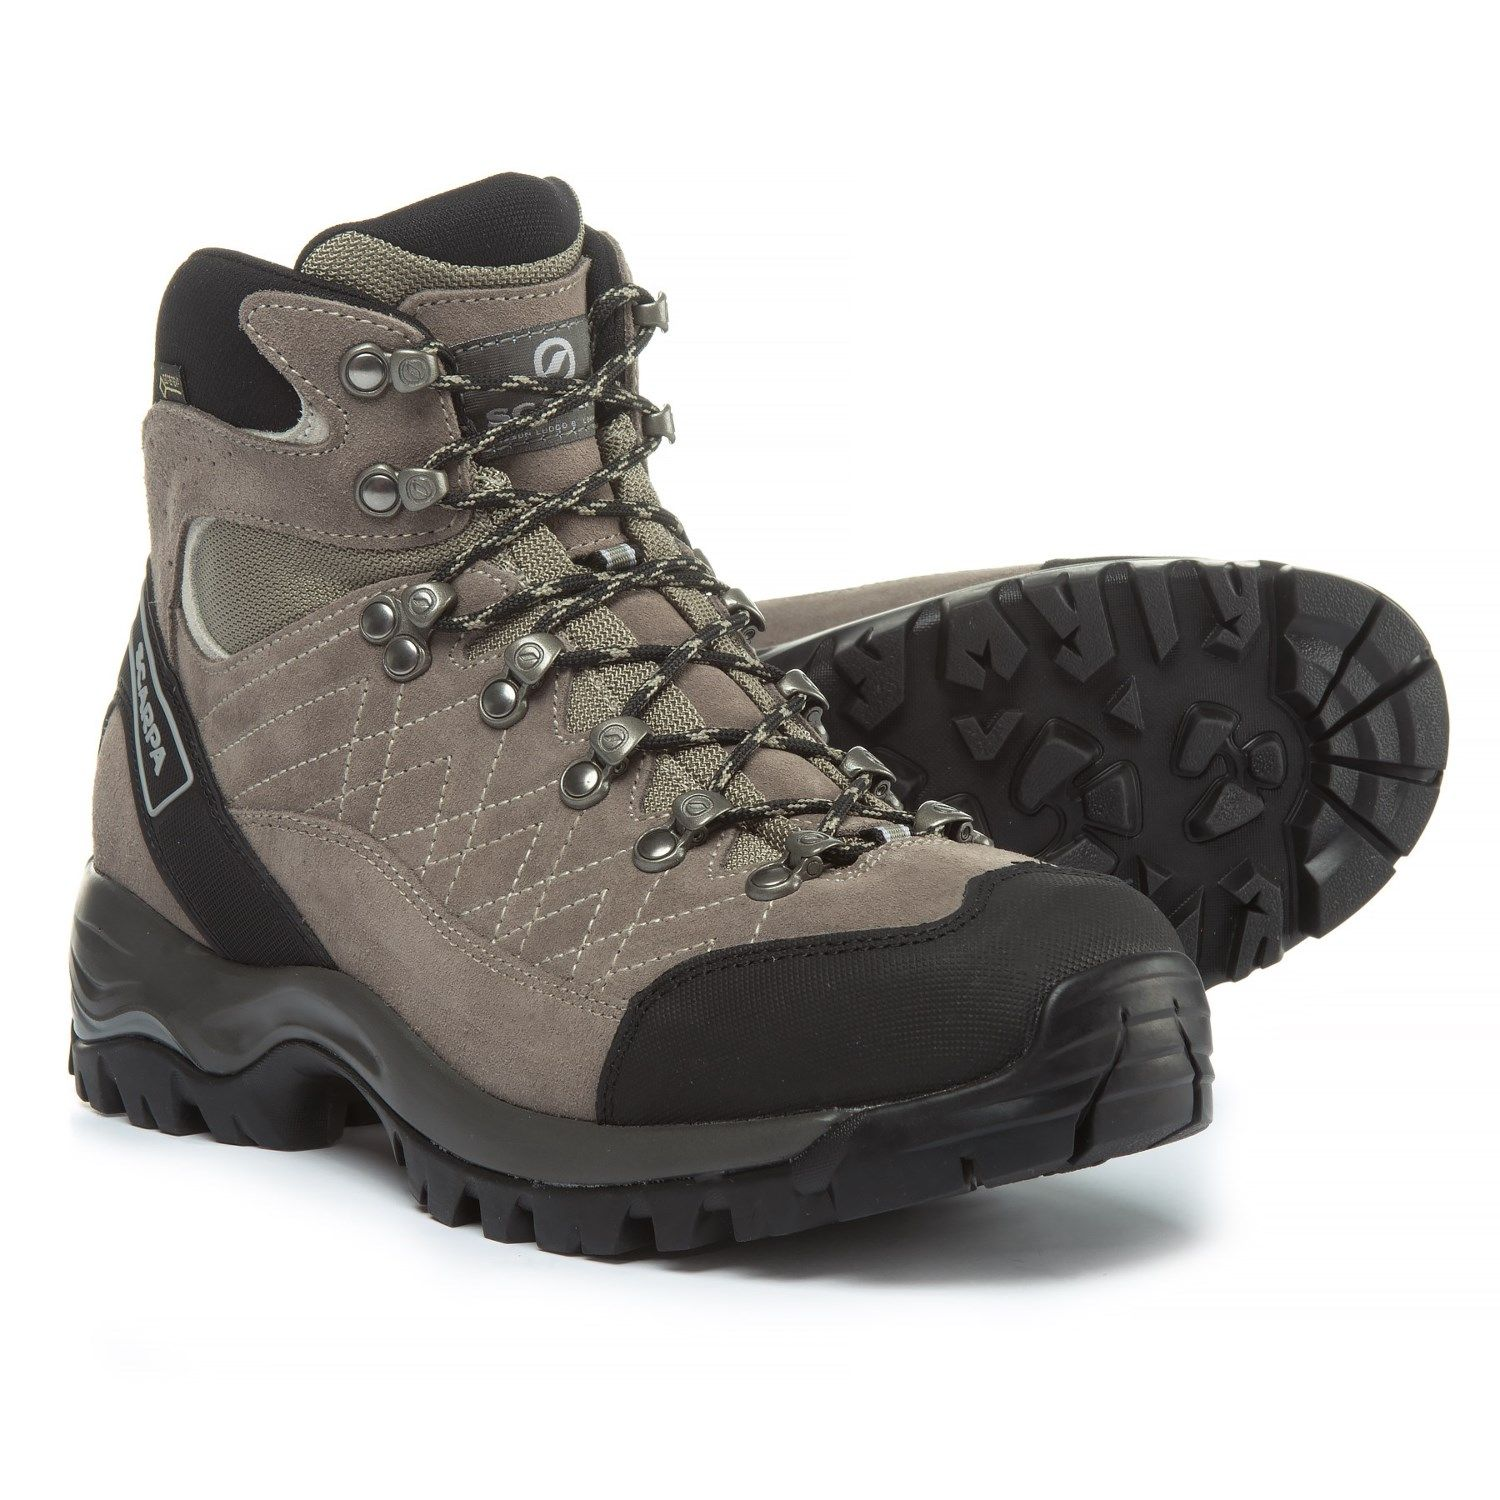 Scarpa Kailash Lite Gore-Tex Men/'s Hiking Boots